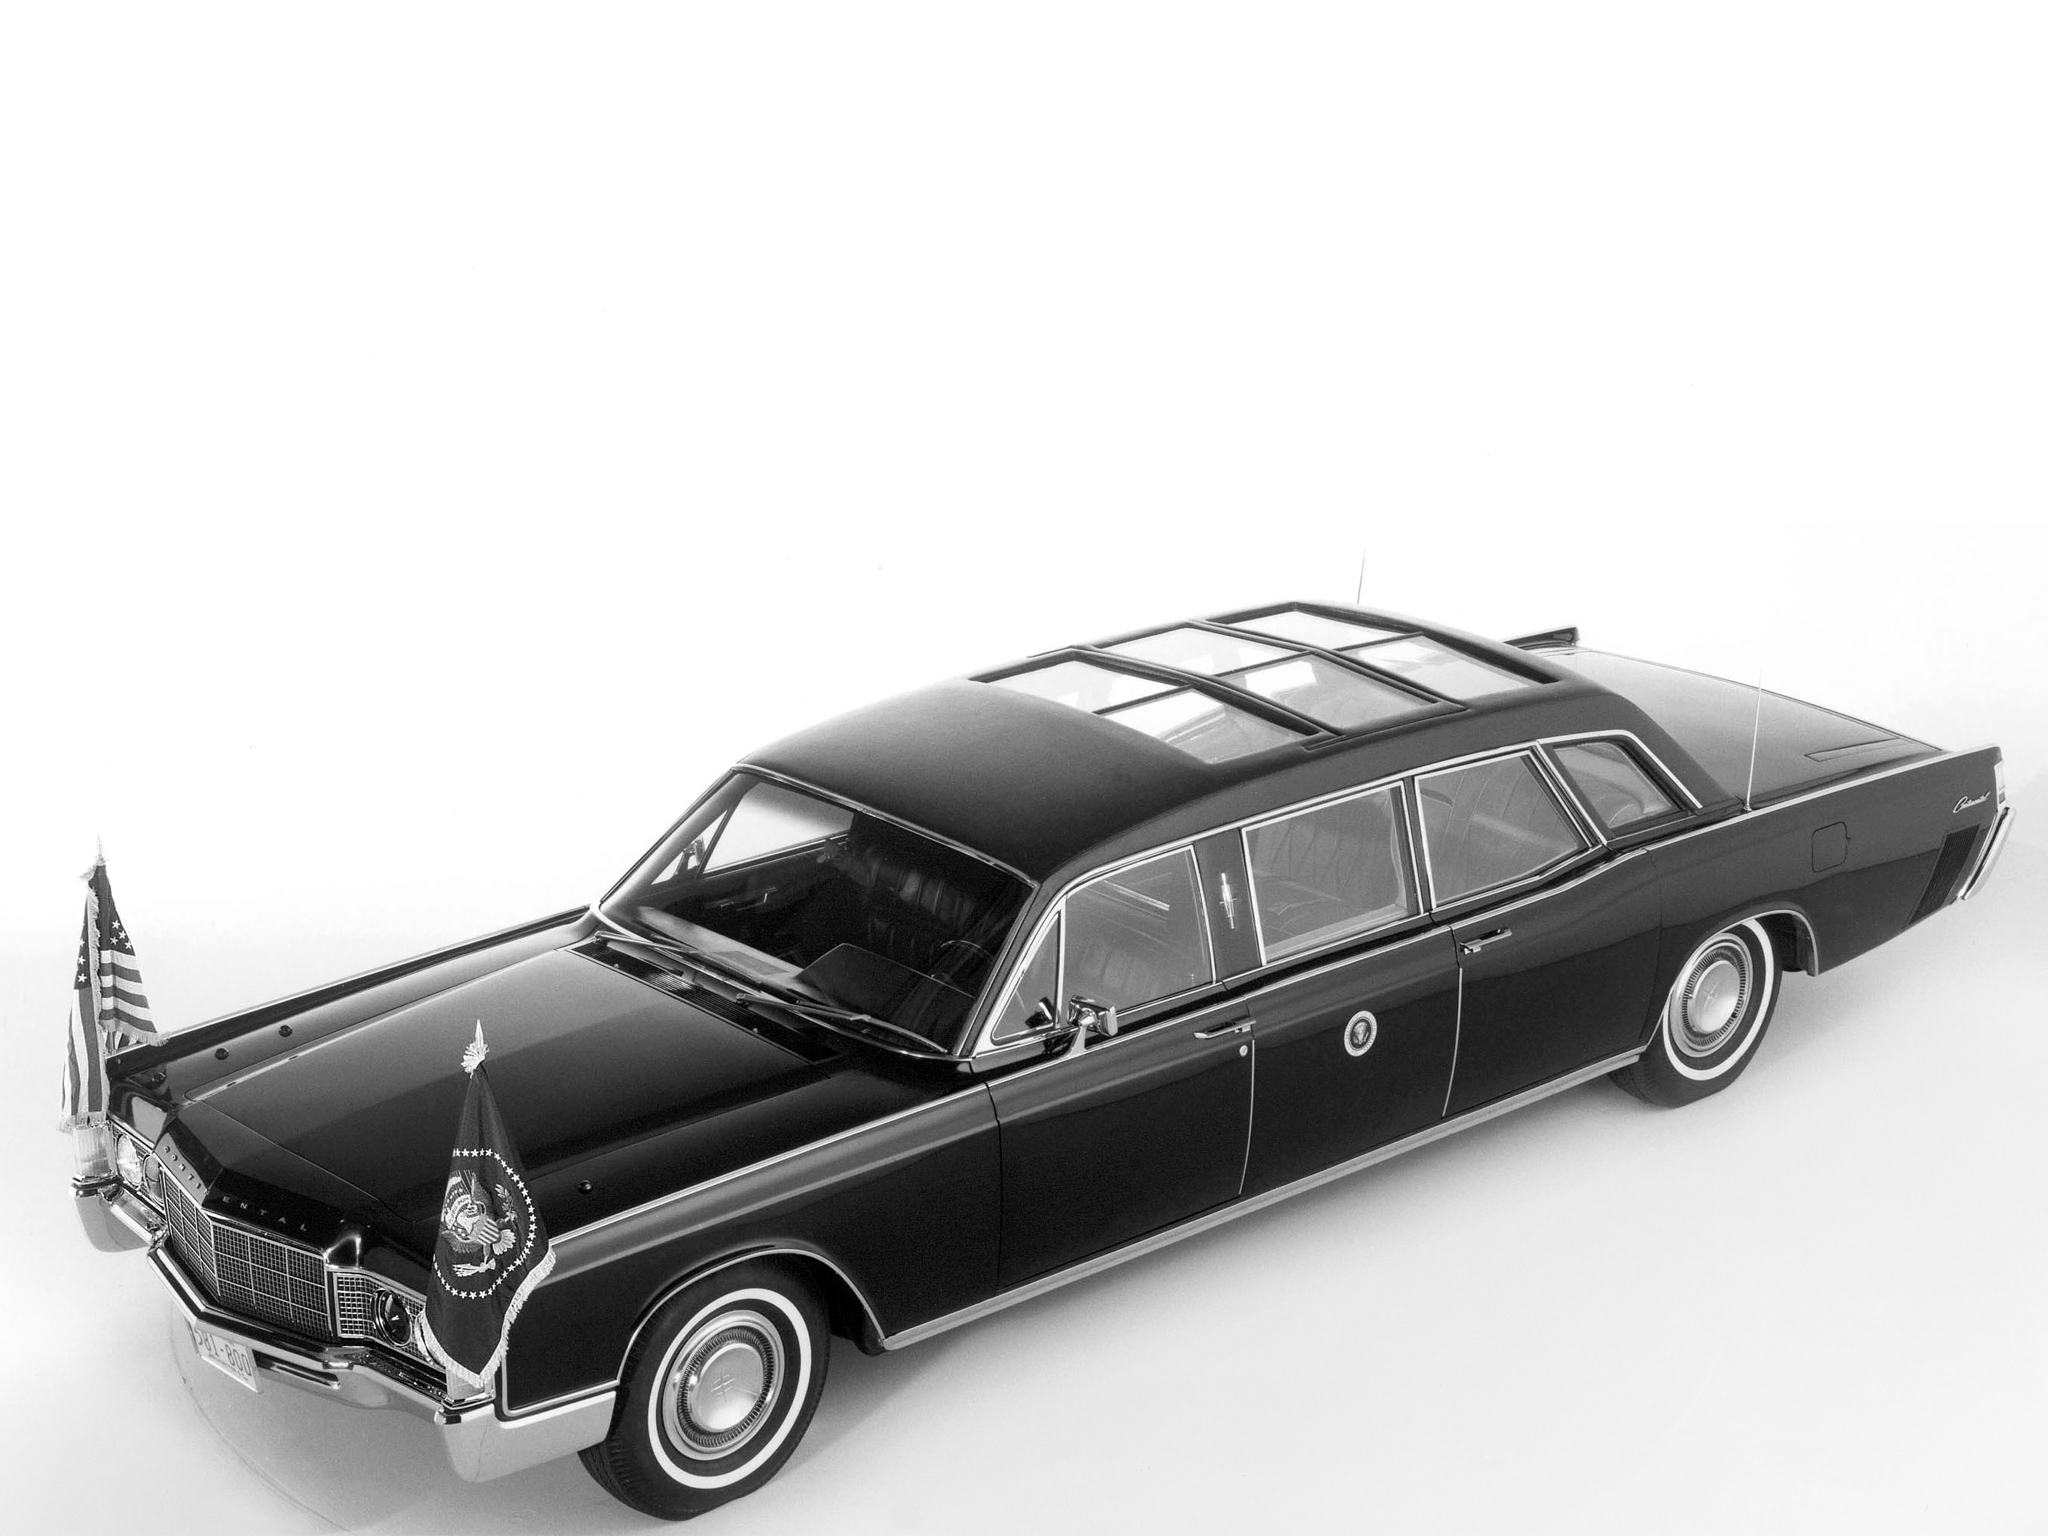 1969 Armored Lincoln Continental Presidential Limousine